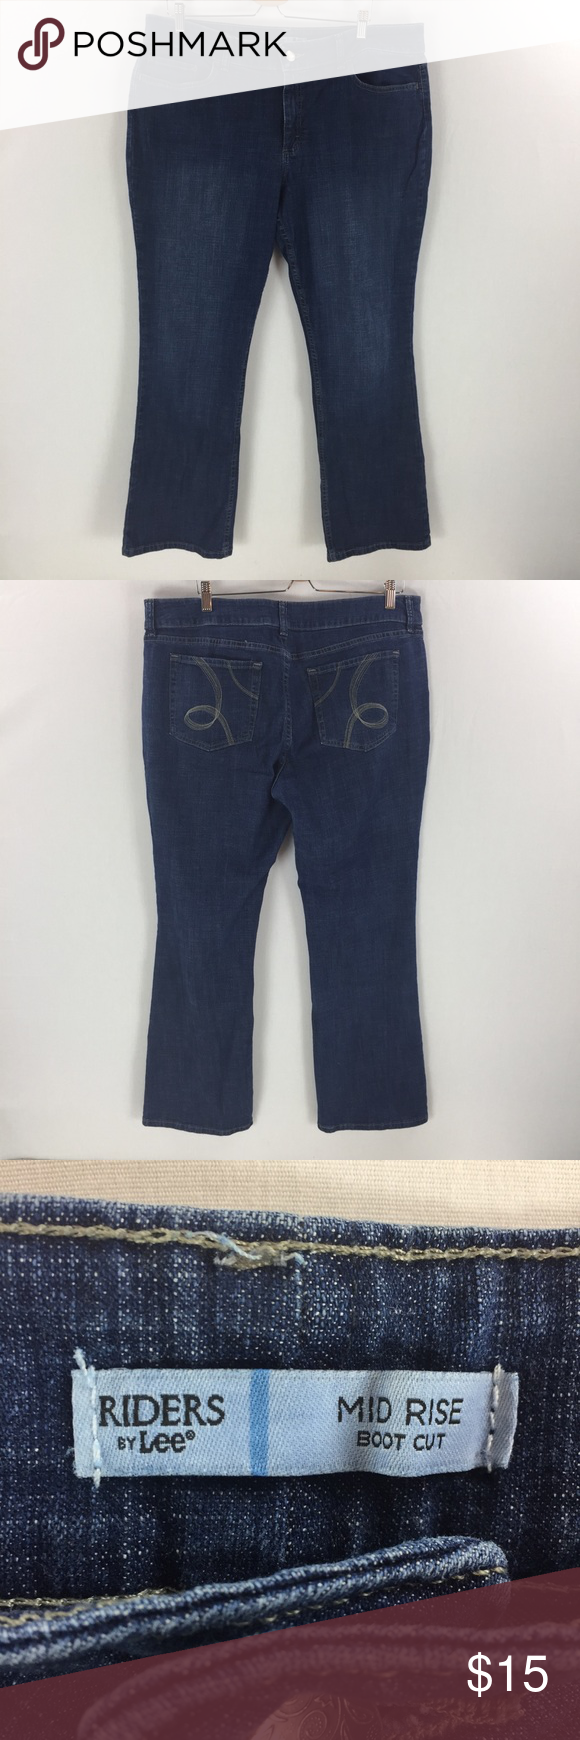 84a511d0f2f Riders mid rise bootcut jeans 18 dark wash Gently worn no noted flaws.  Riders by Lee Jeans Boot Cut